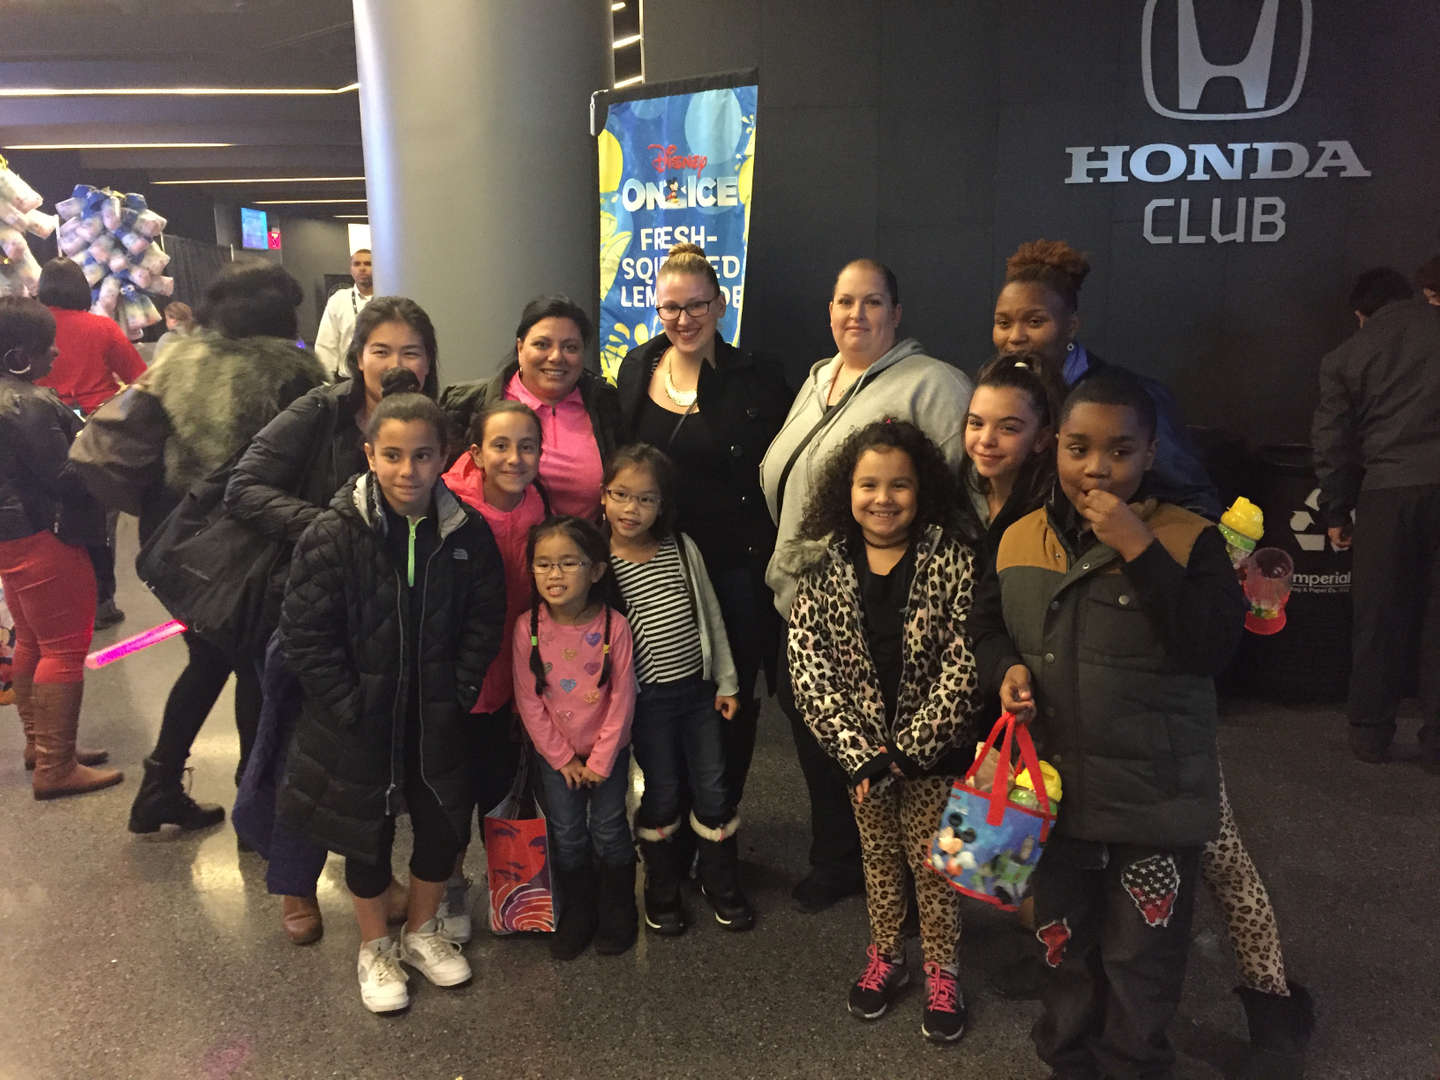 Disney on Ice with the families